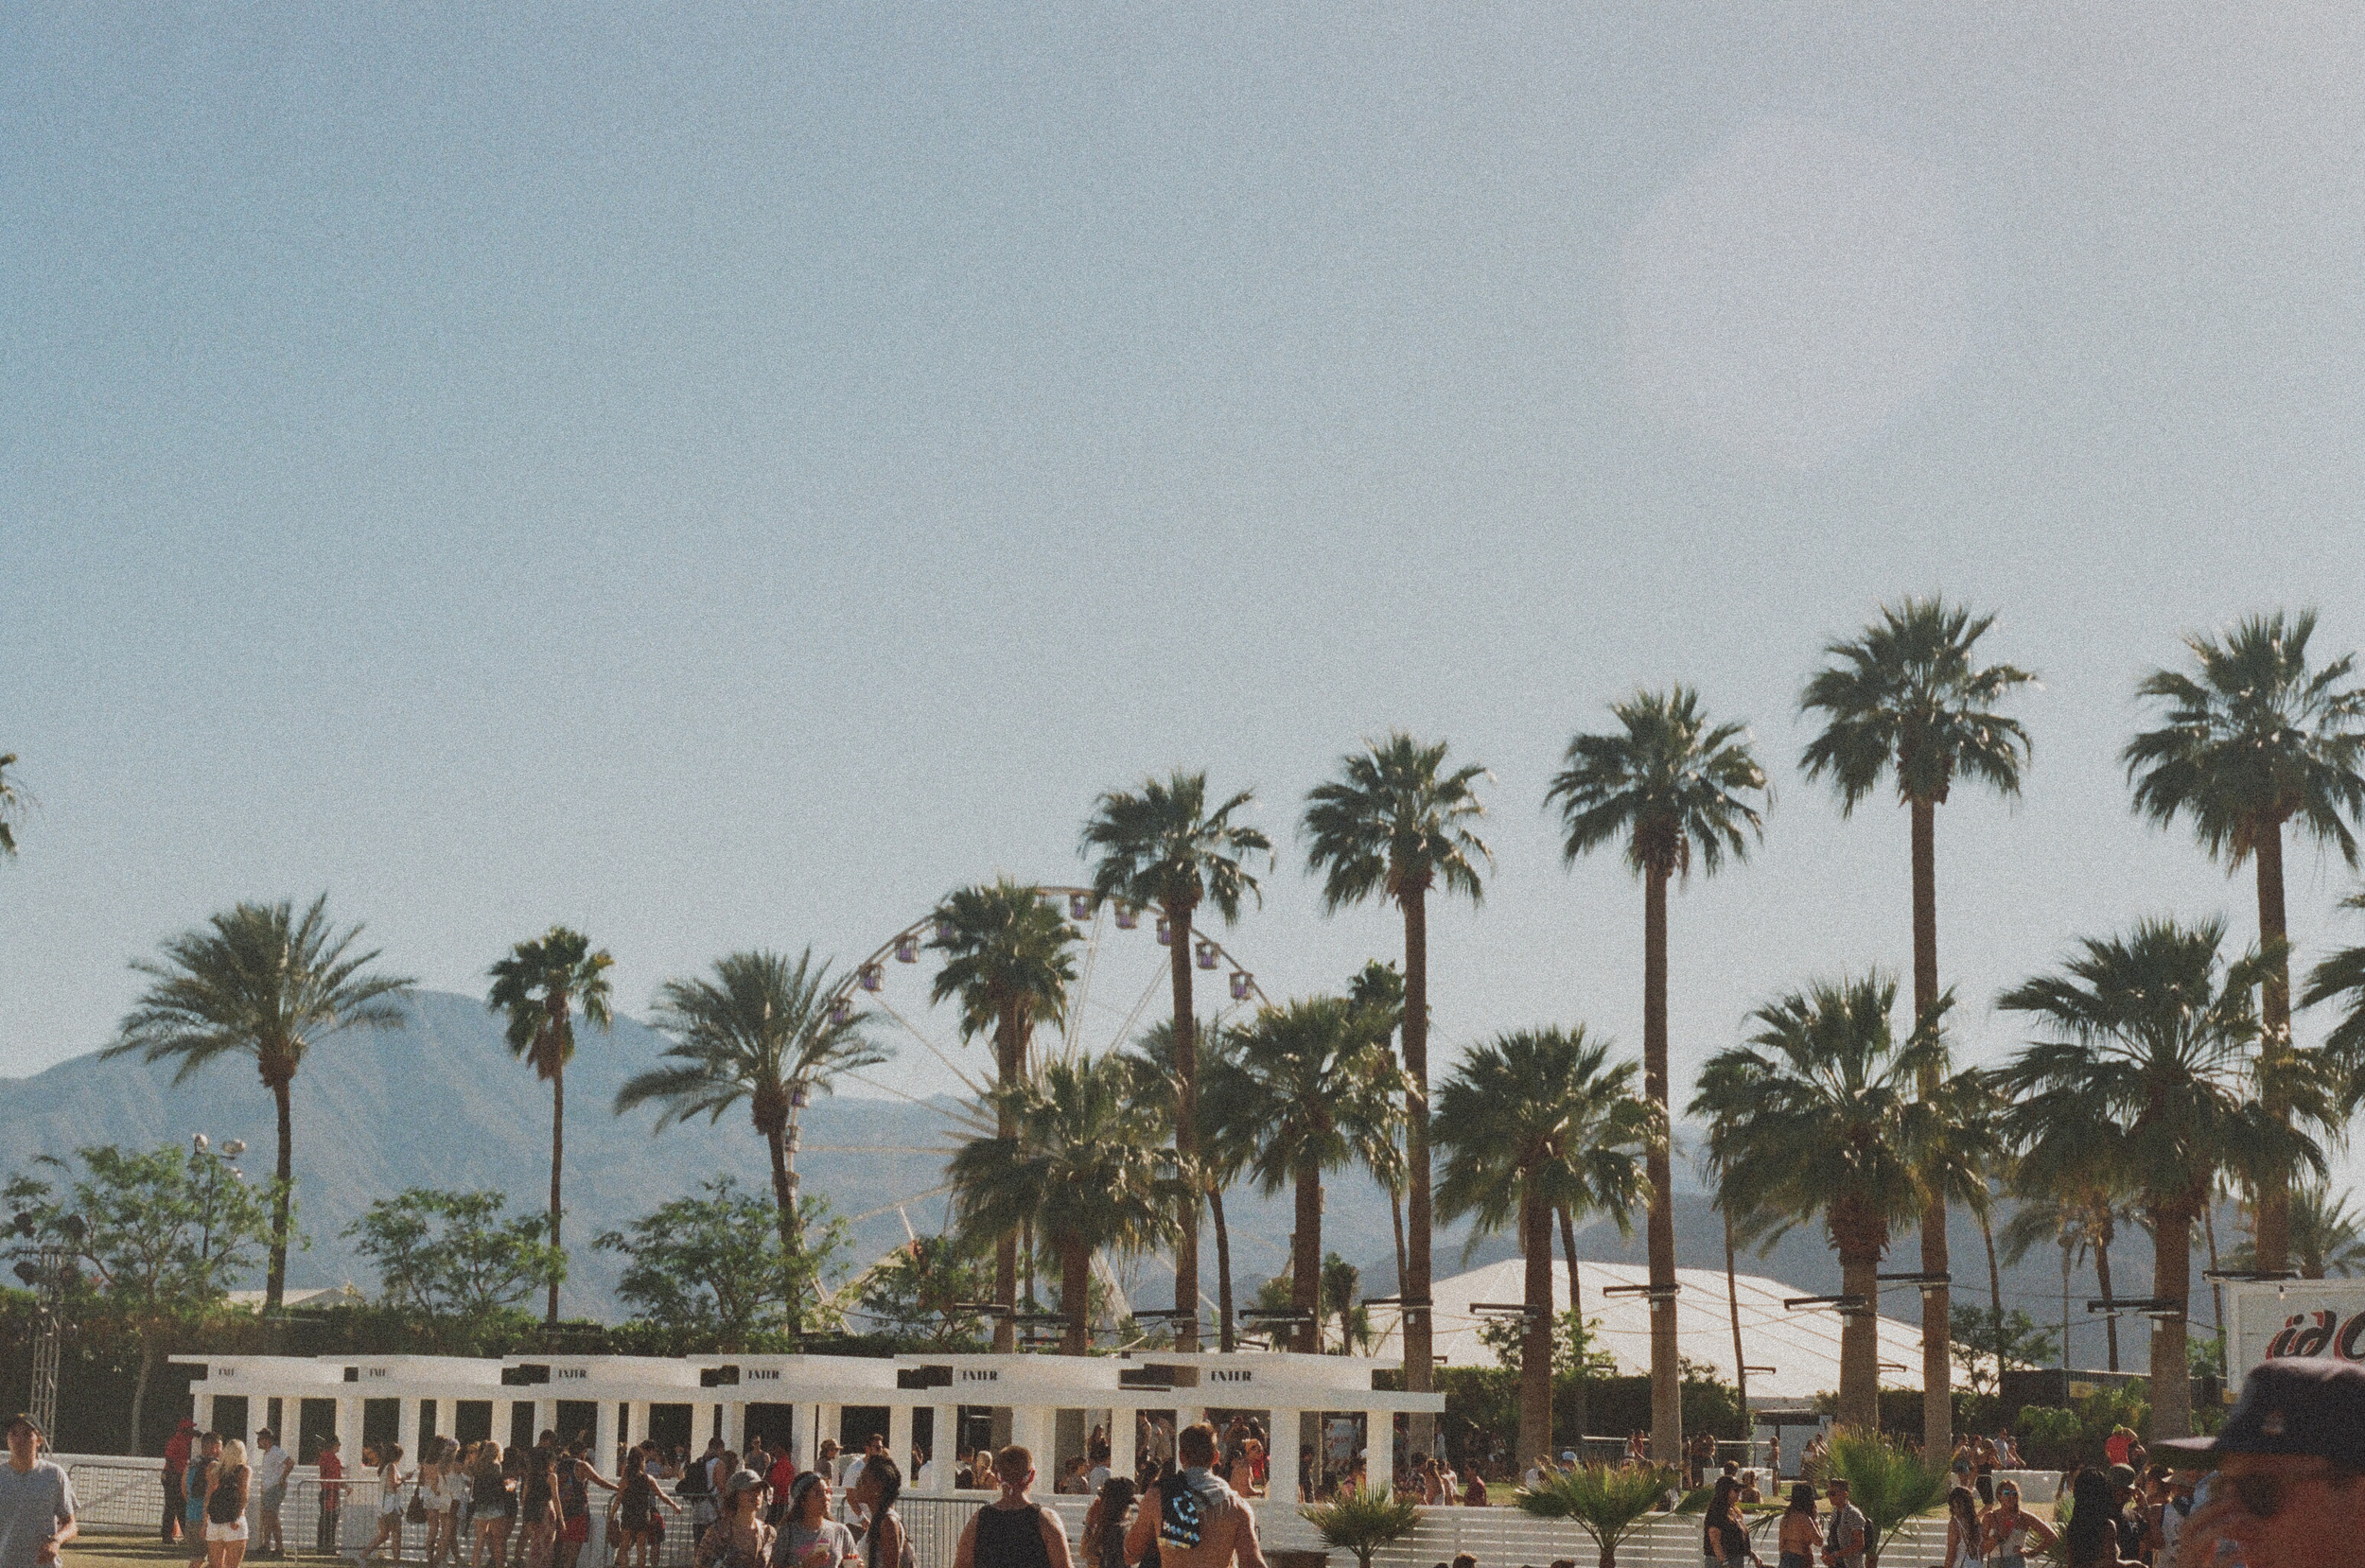 Coachella FILM_web-65950035.jpg